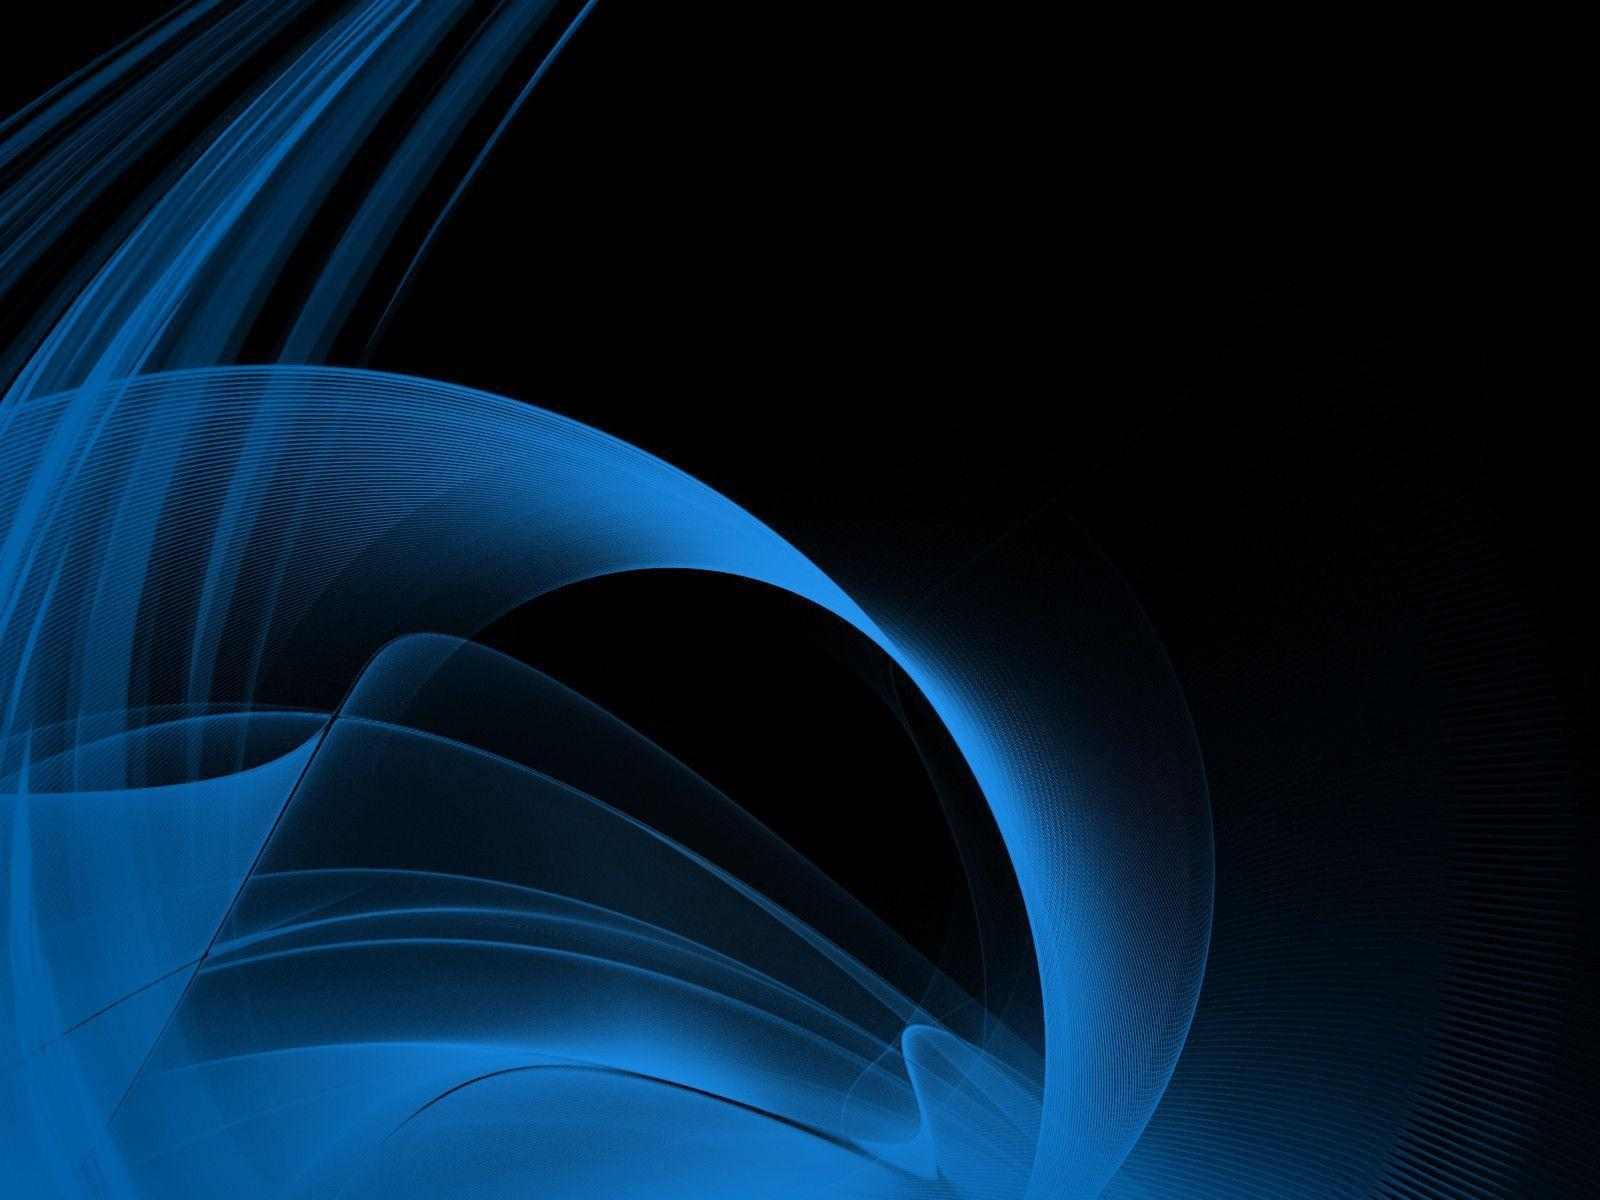 Blue And Black Backgrounds - Wallpaper Cave